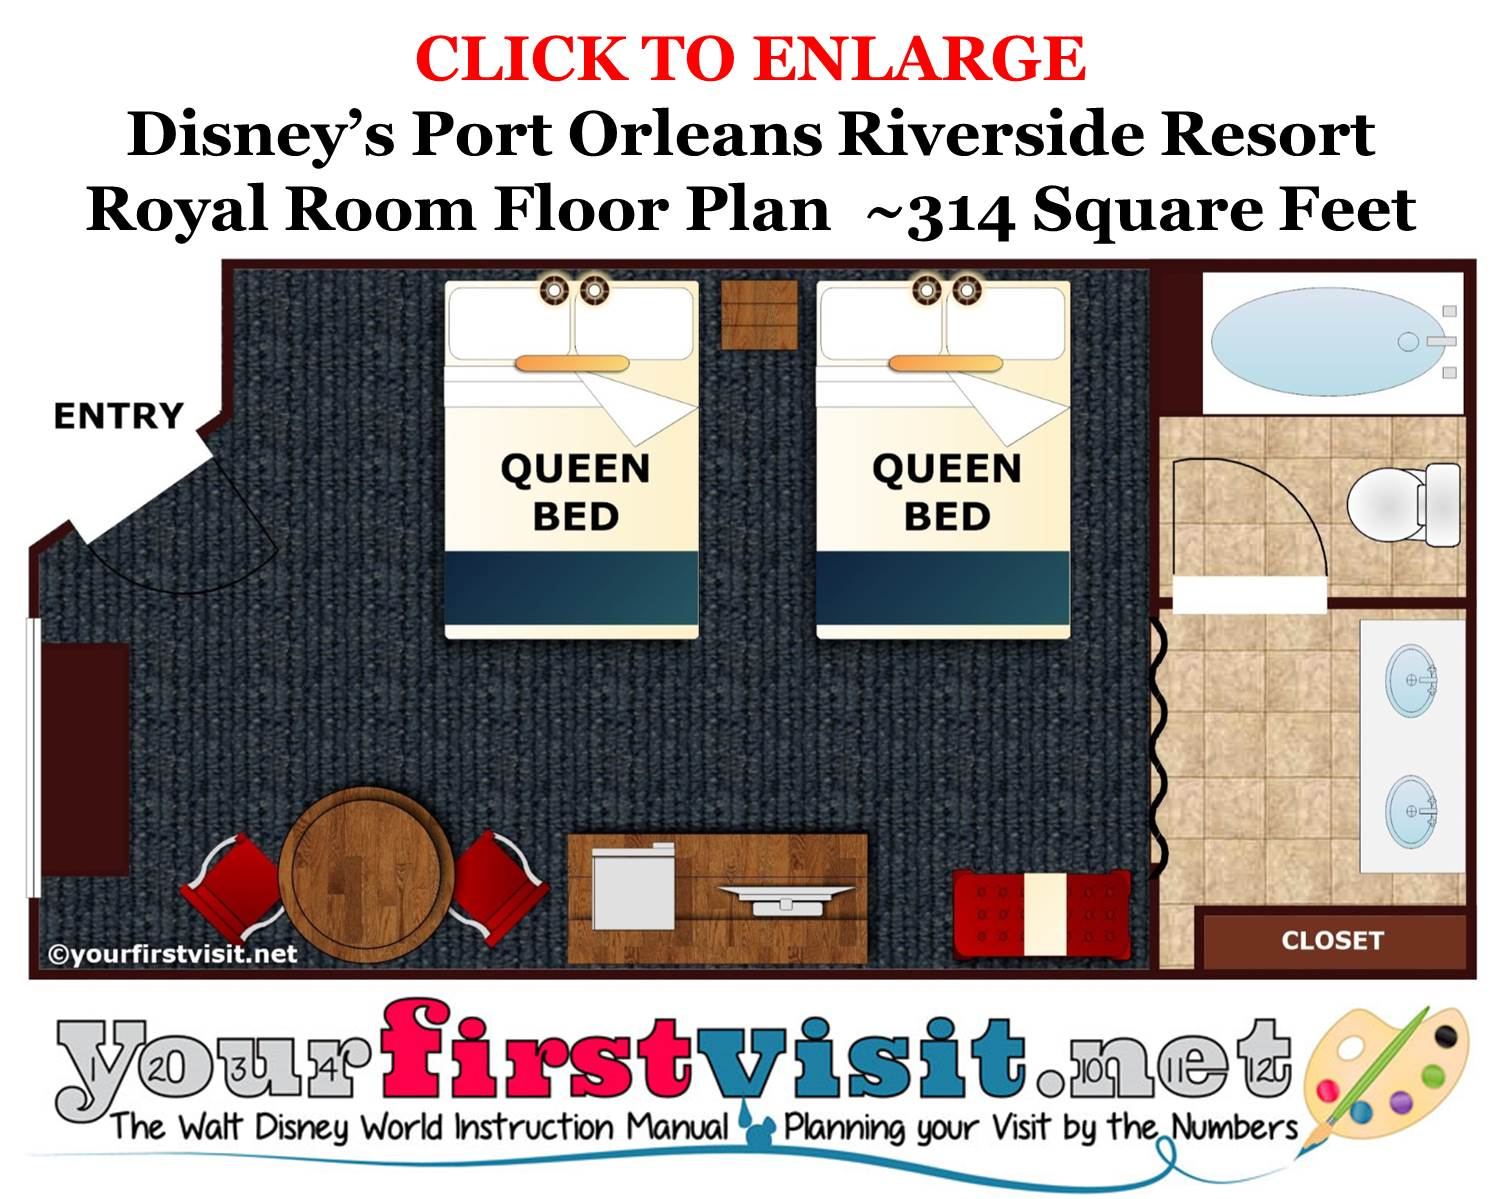 Floor Plan Royal Room Disney's Port Orleans Riverside Resort from yourfirstvisit.net